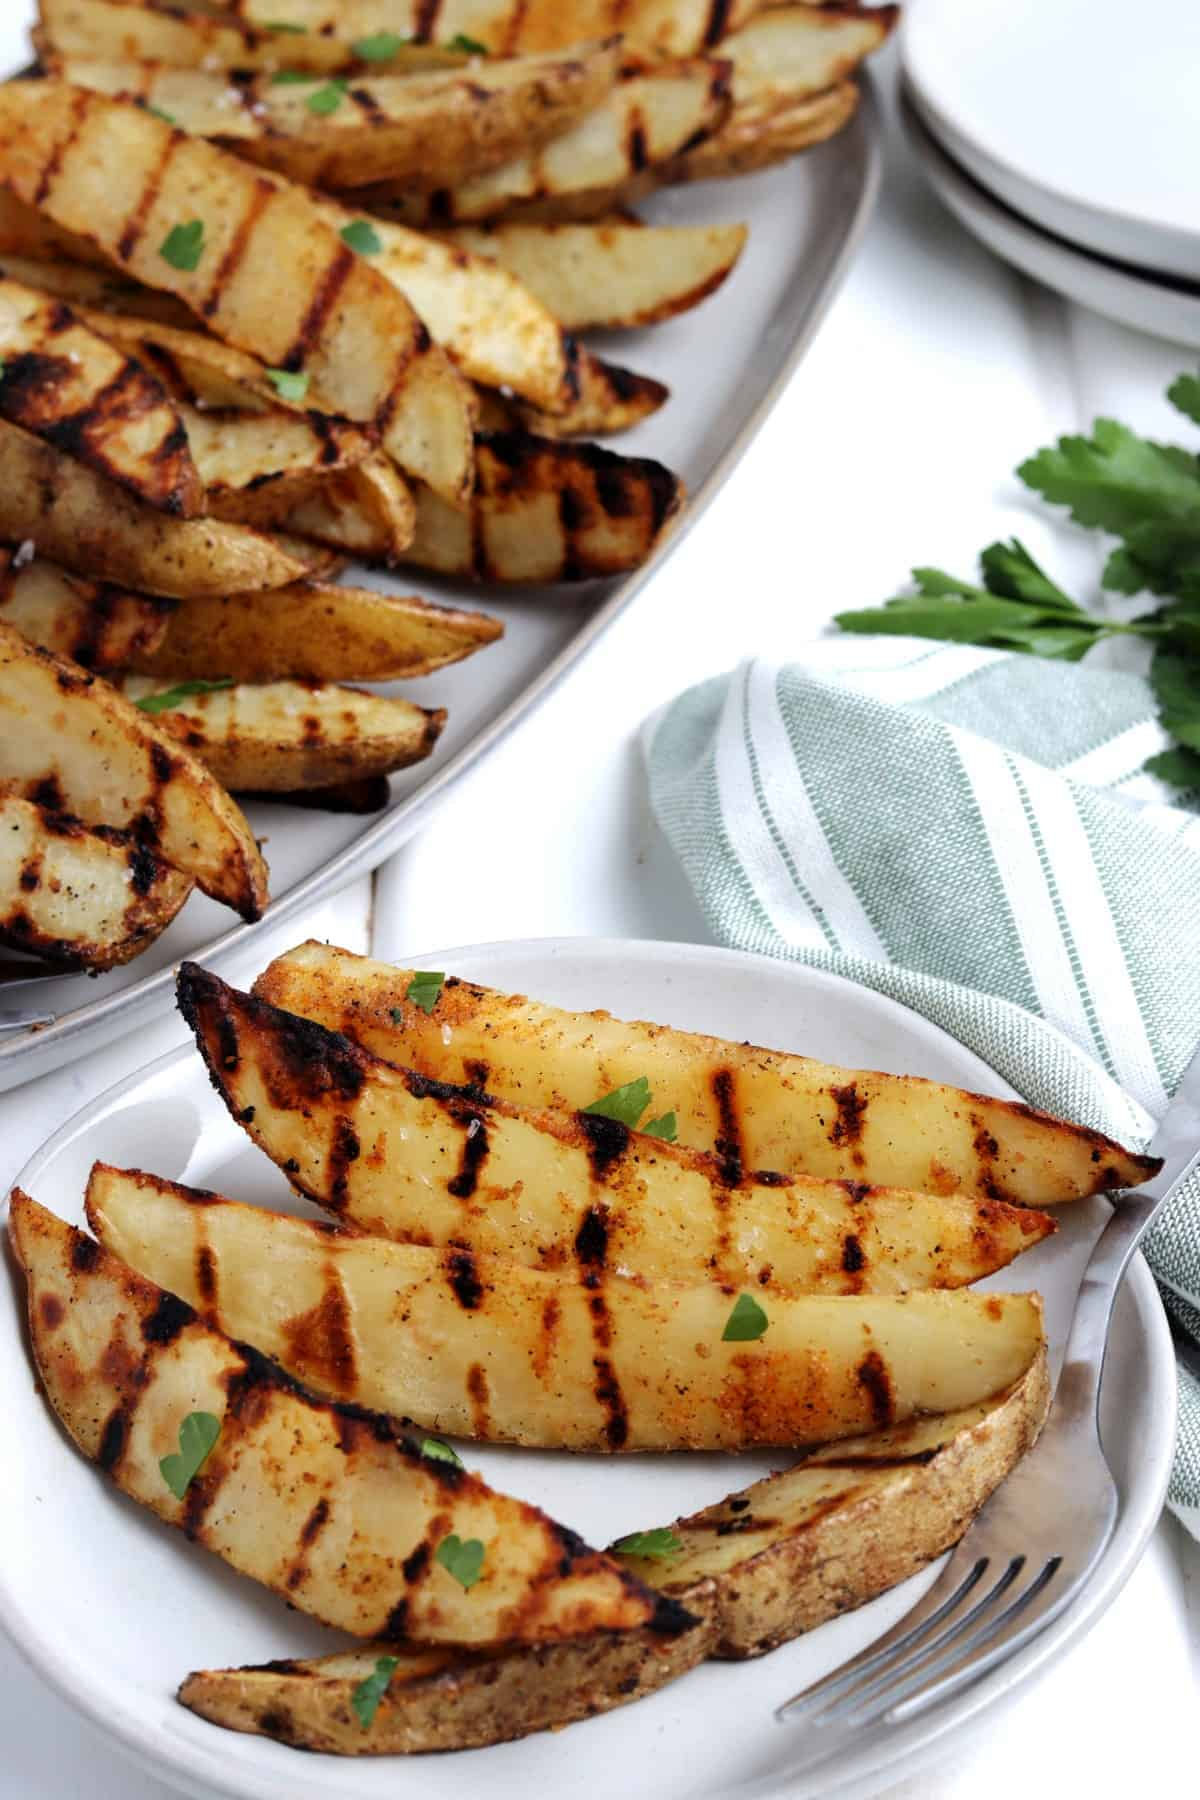 A nice serving of grilled veggies on a small plate with more behind.